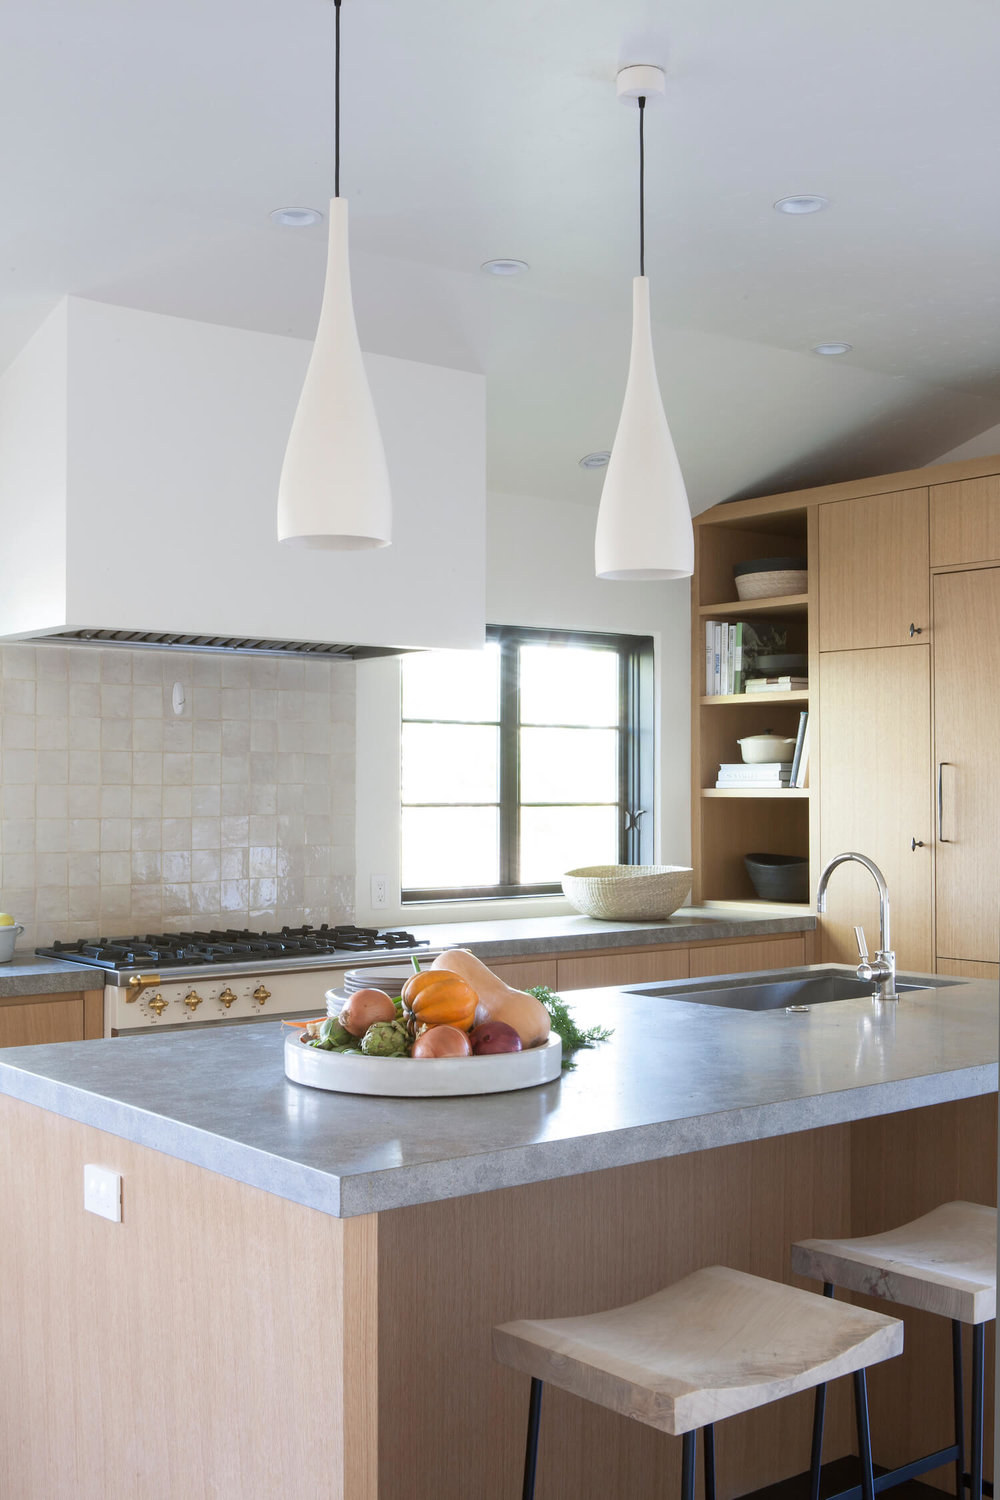 Another example of white (or off white) Zellige tiles for the kitchen splashback. Interior Design:  DISC Interiors